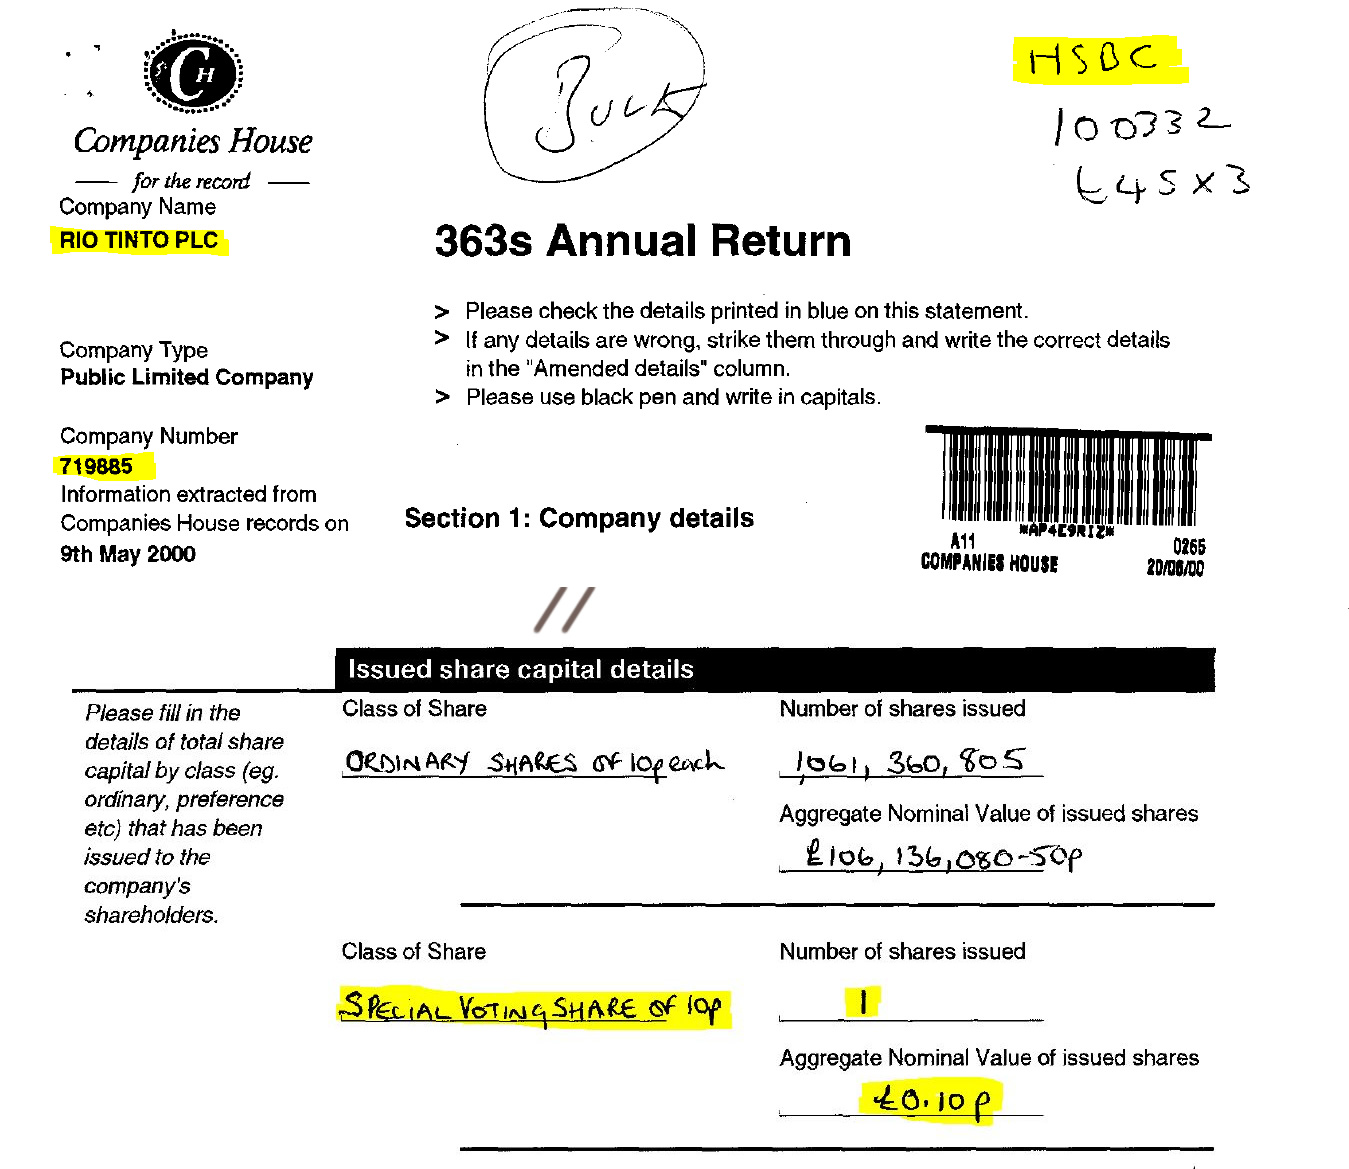 Rio Tinto PLC. (Dec. 31, 1999). 2000 Annual Return, Reg. No. 719885. Companies House. Take special note that it appears that HSBC is handling Rio Tinto's corporate filings.